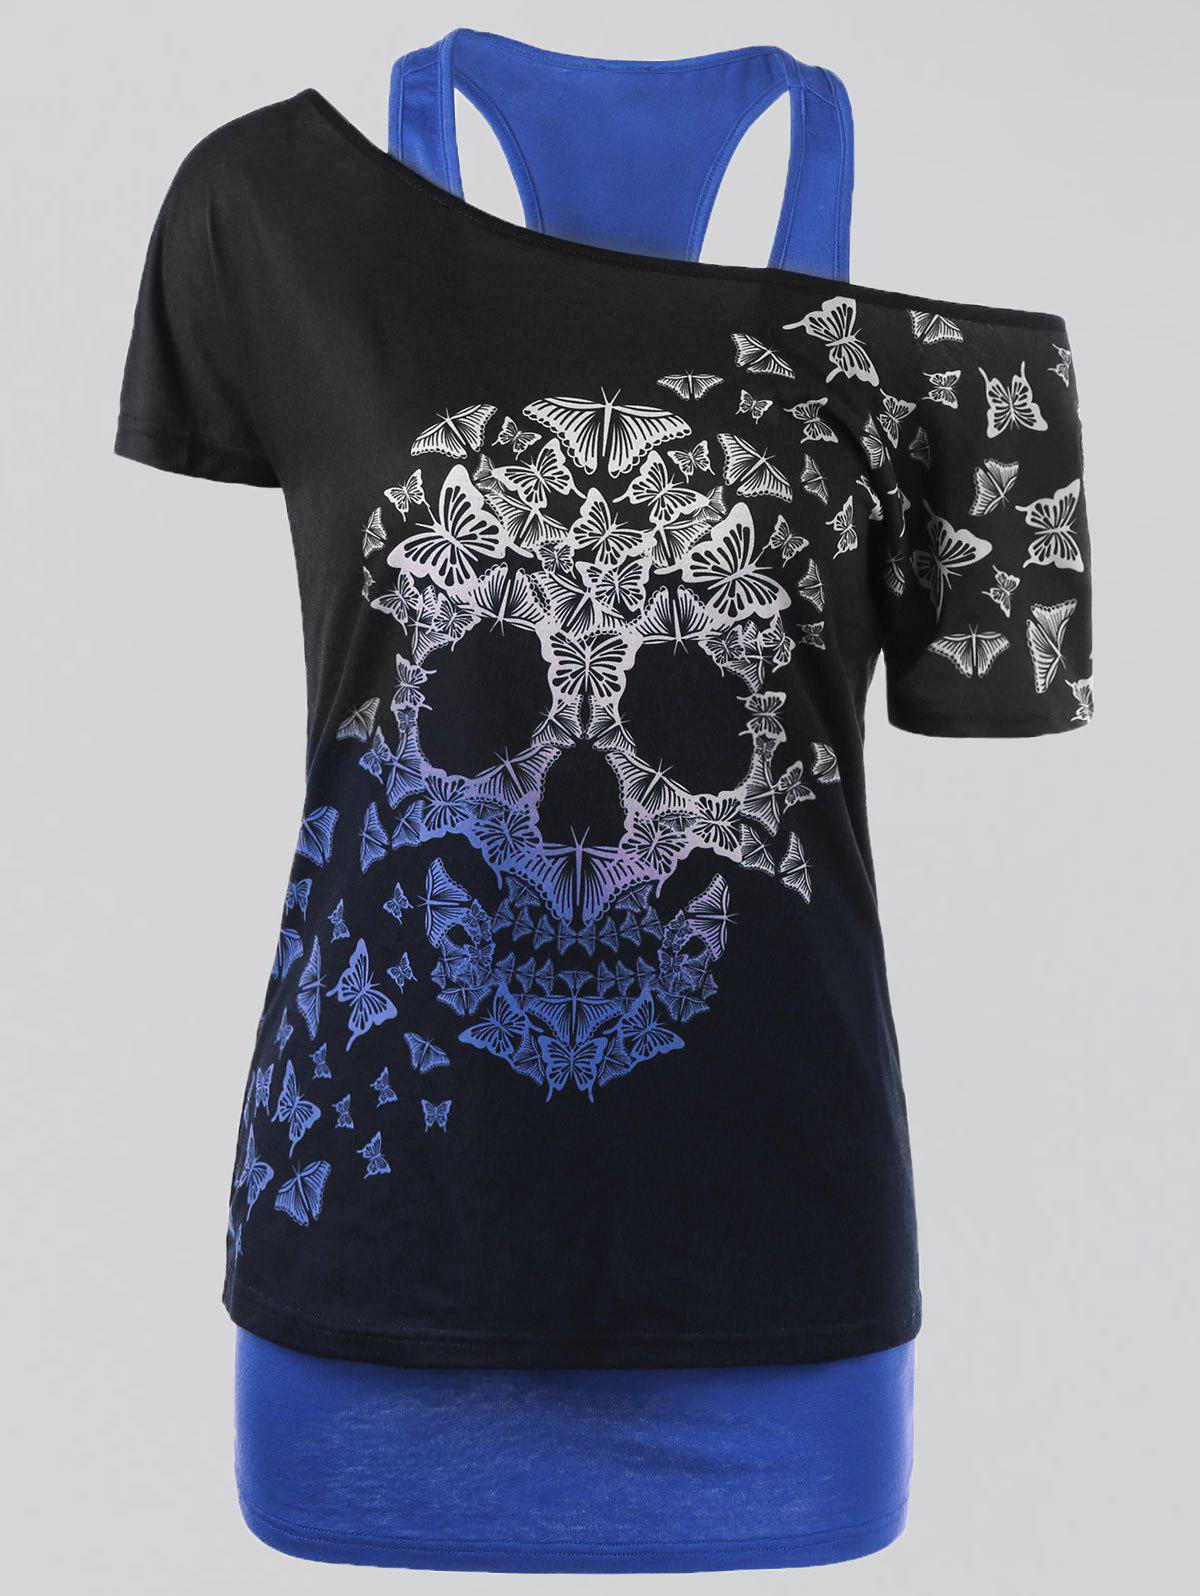 Plus Size Butterfly Skull T-shirt and Tank TopWOMEN<br><br>Size: 2XL; Color: BLUE; Material: Polyester,Spandex; Shirt Length: Regular; Sleeve Length: Short; Collar: Convertible Collar; Style: Casual; Season: Summer; Pattern Type: Skulls; Weight: 0.3500kg; Package Contents: 1 x T-shirt  1 x Tank Top;